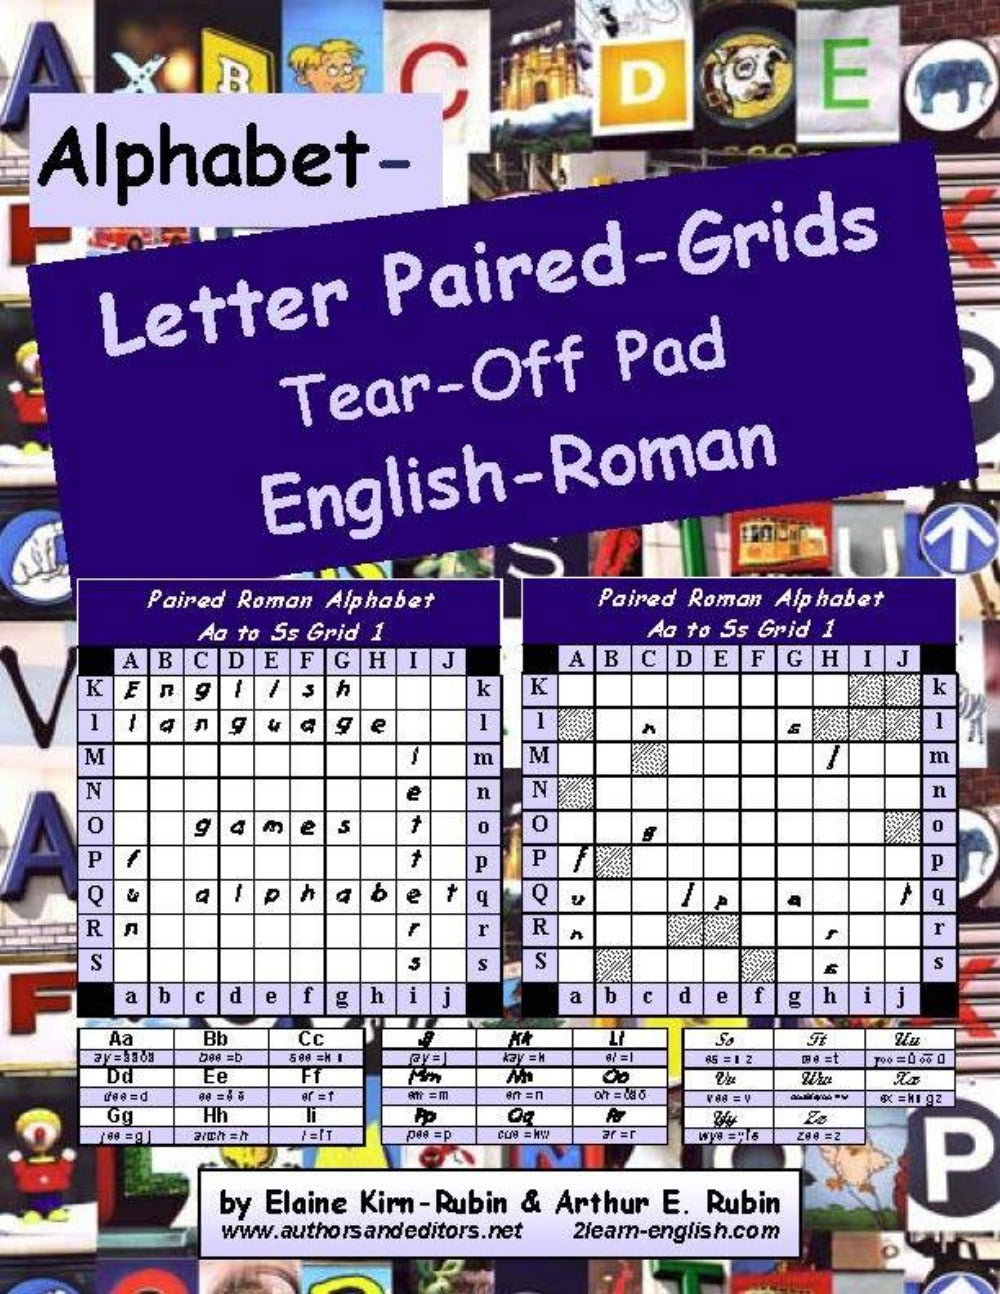 Alphabet Letters Paired Grids, English-Roman: Strategy Boards